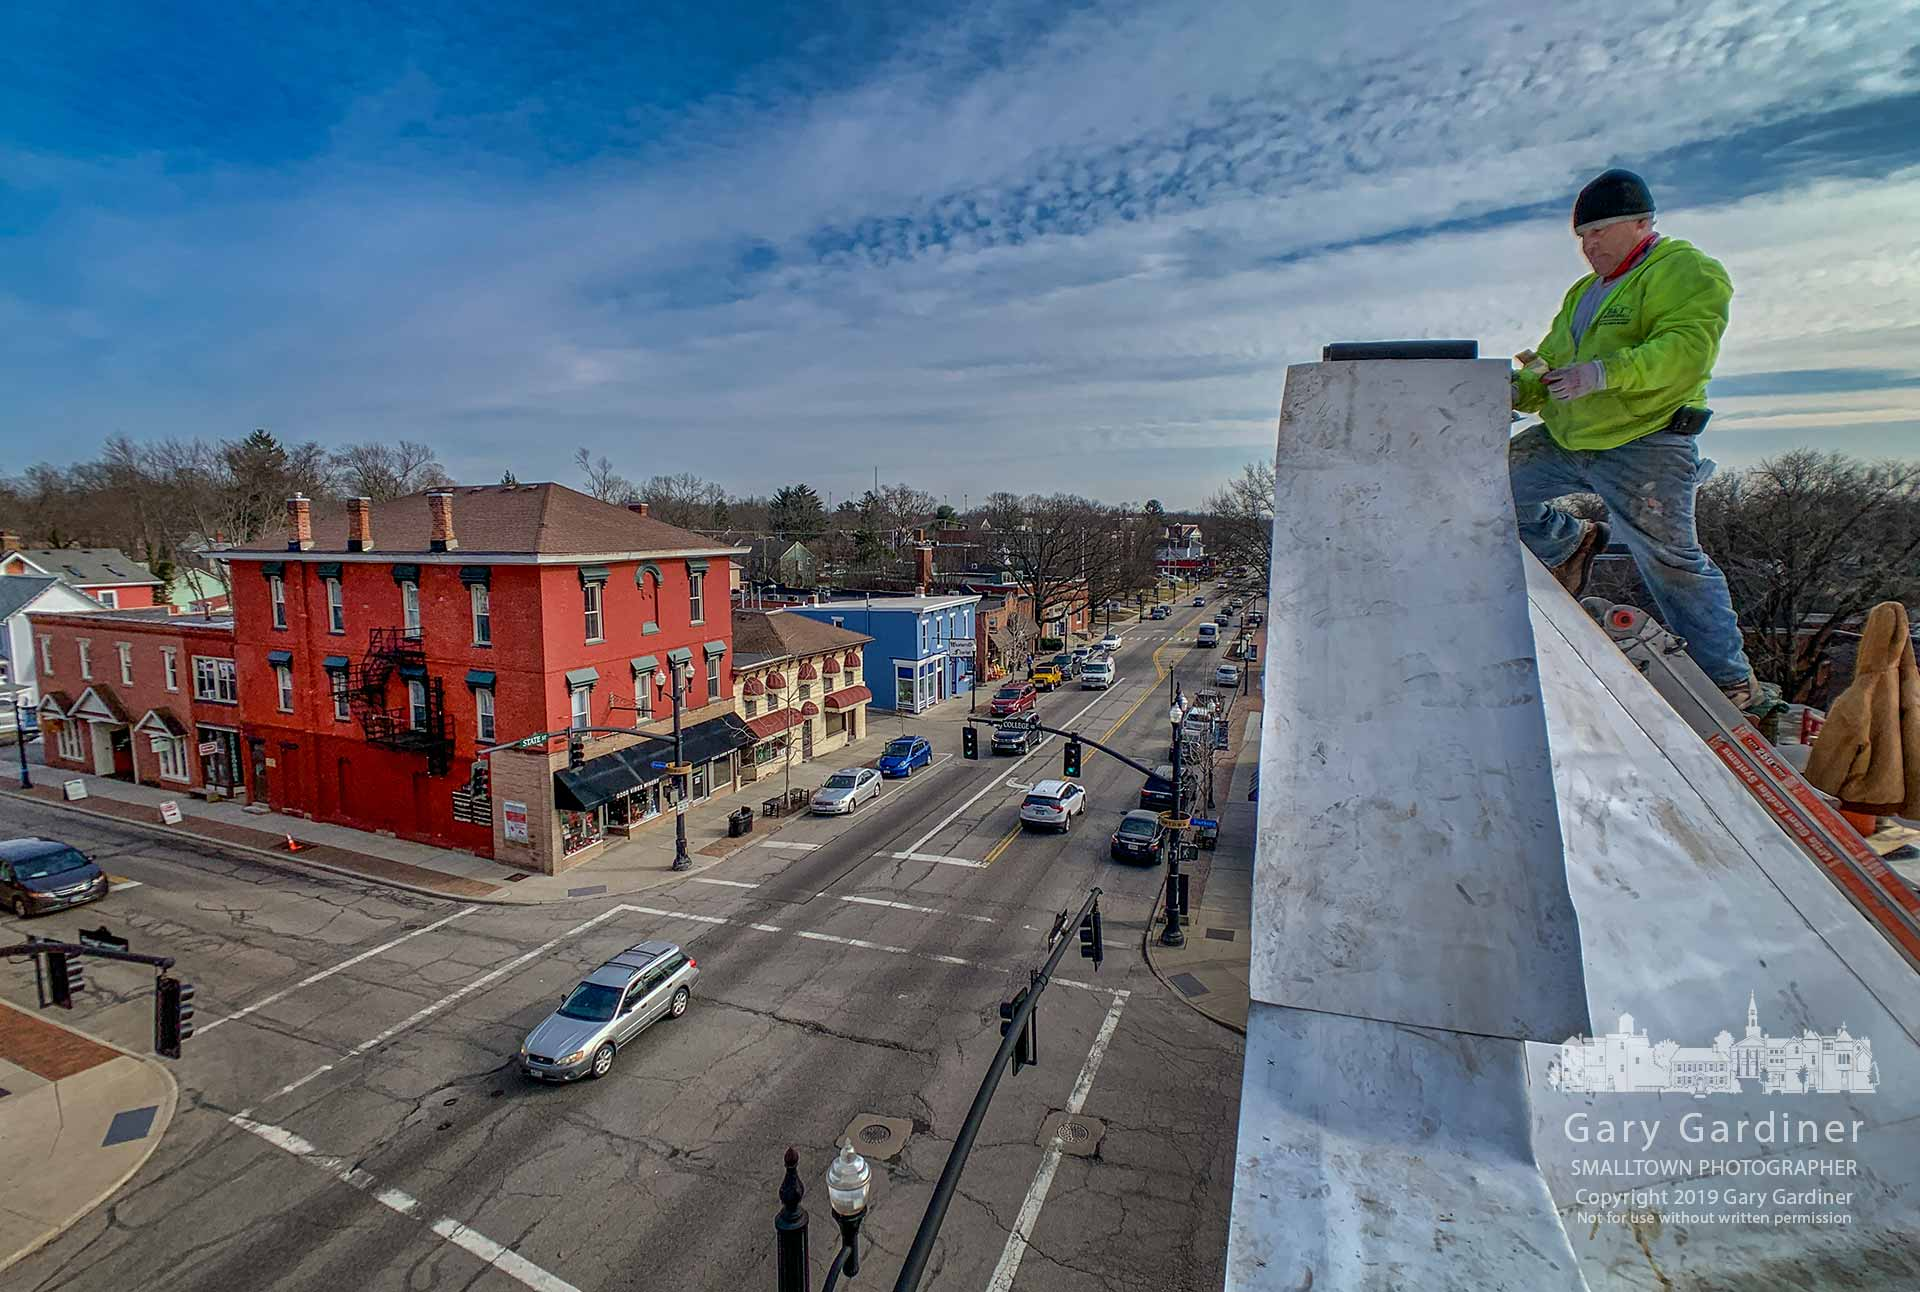 A roofer applies a rubber bladder to the top of the cornice on the roof of the Cockerell Building as renovations for the structure near completion. My Final Photo for Feb. 26, 2019.